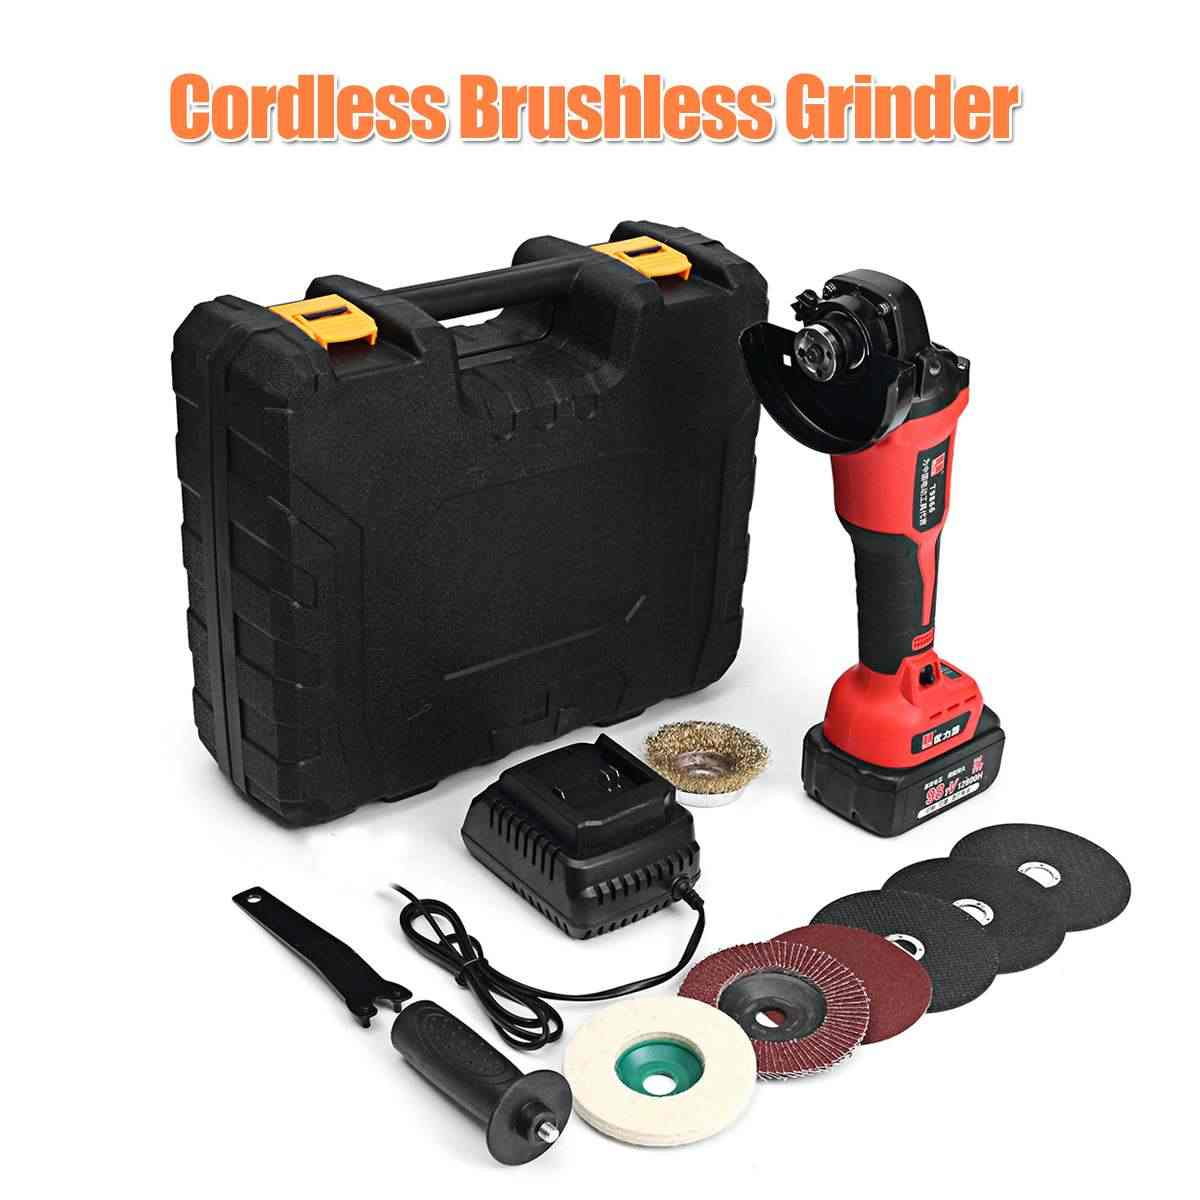 21V Cordless Brushless Grinder Tools 3.0Ah Rechargable Lithium Li-ion Battery 100mm Angle Grinding Cutting Machine Kit Box